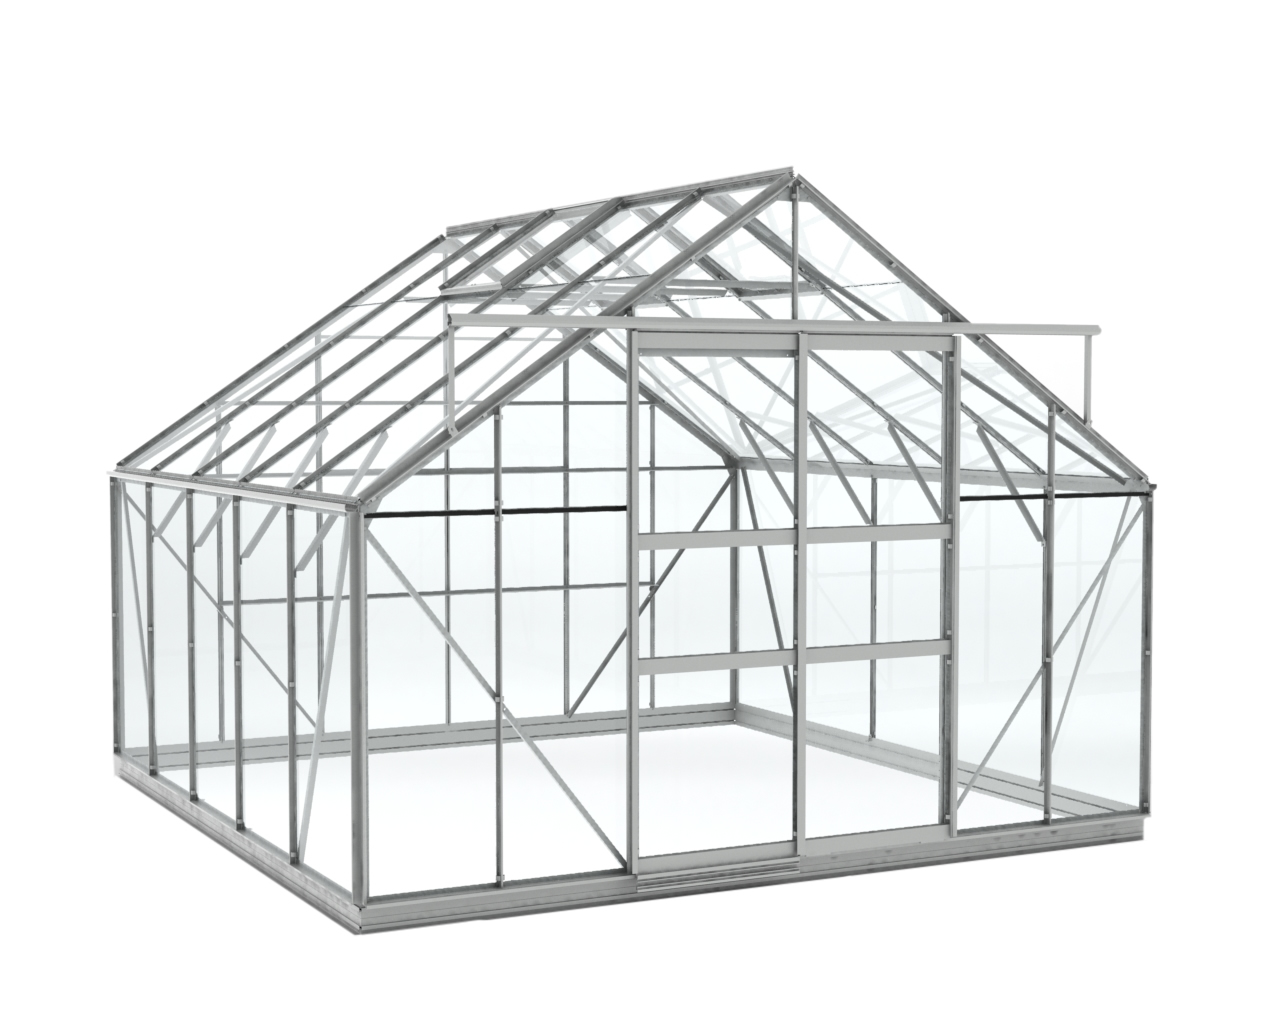 Greenhouse Electrical Wiring. Greenhouse. Wiring Diagrams